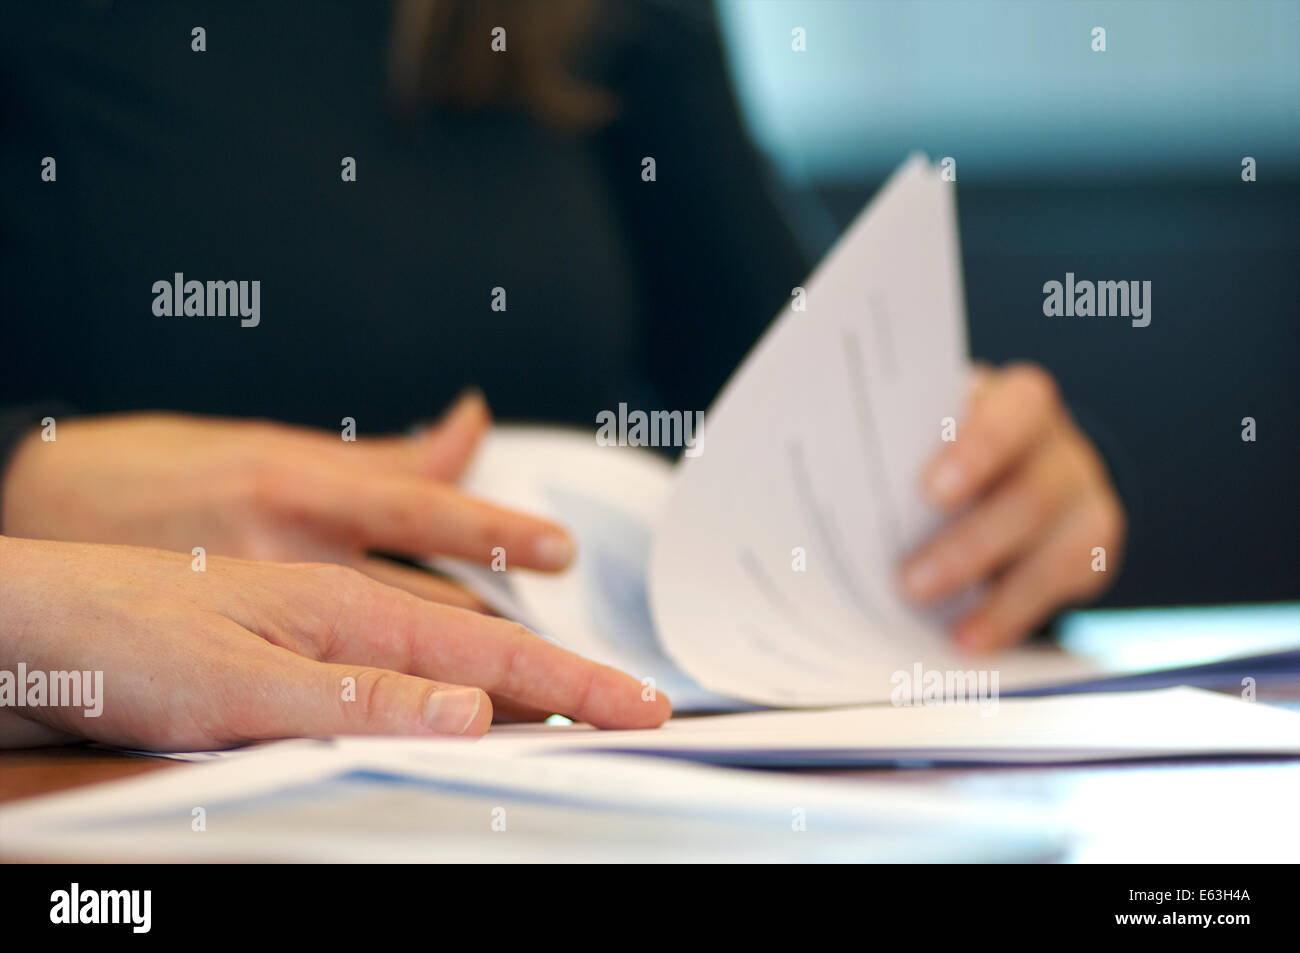 Hands and documents on the table in an office during a meeting - Stock Image